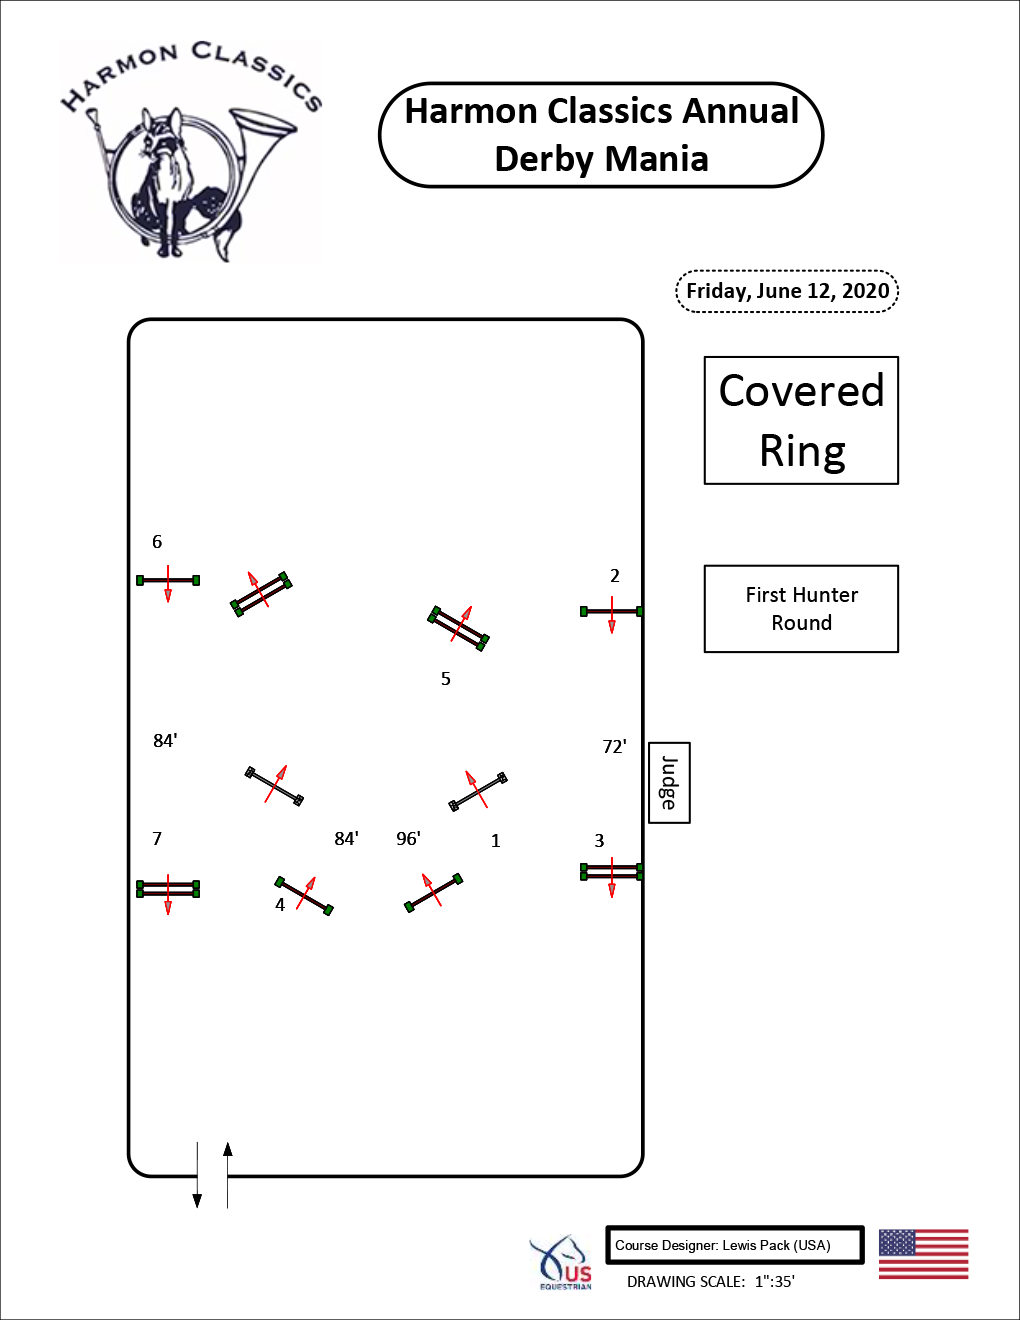 Covered-Arena-Friday6-12-First-Hunter-Round-Harmon-Classics-Derby-Mania